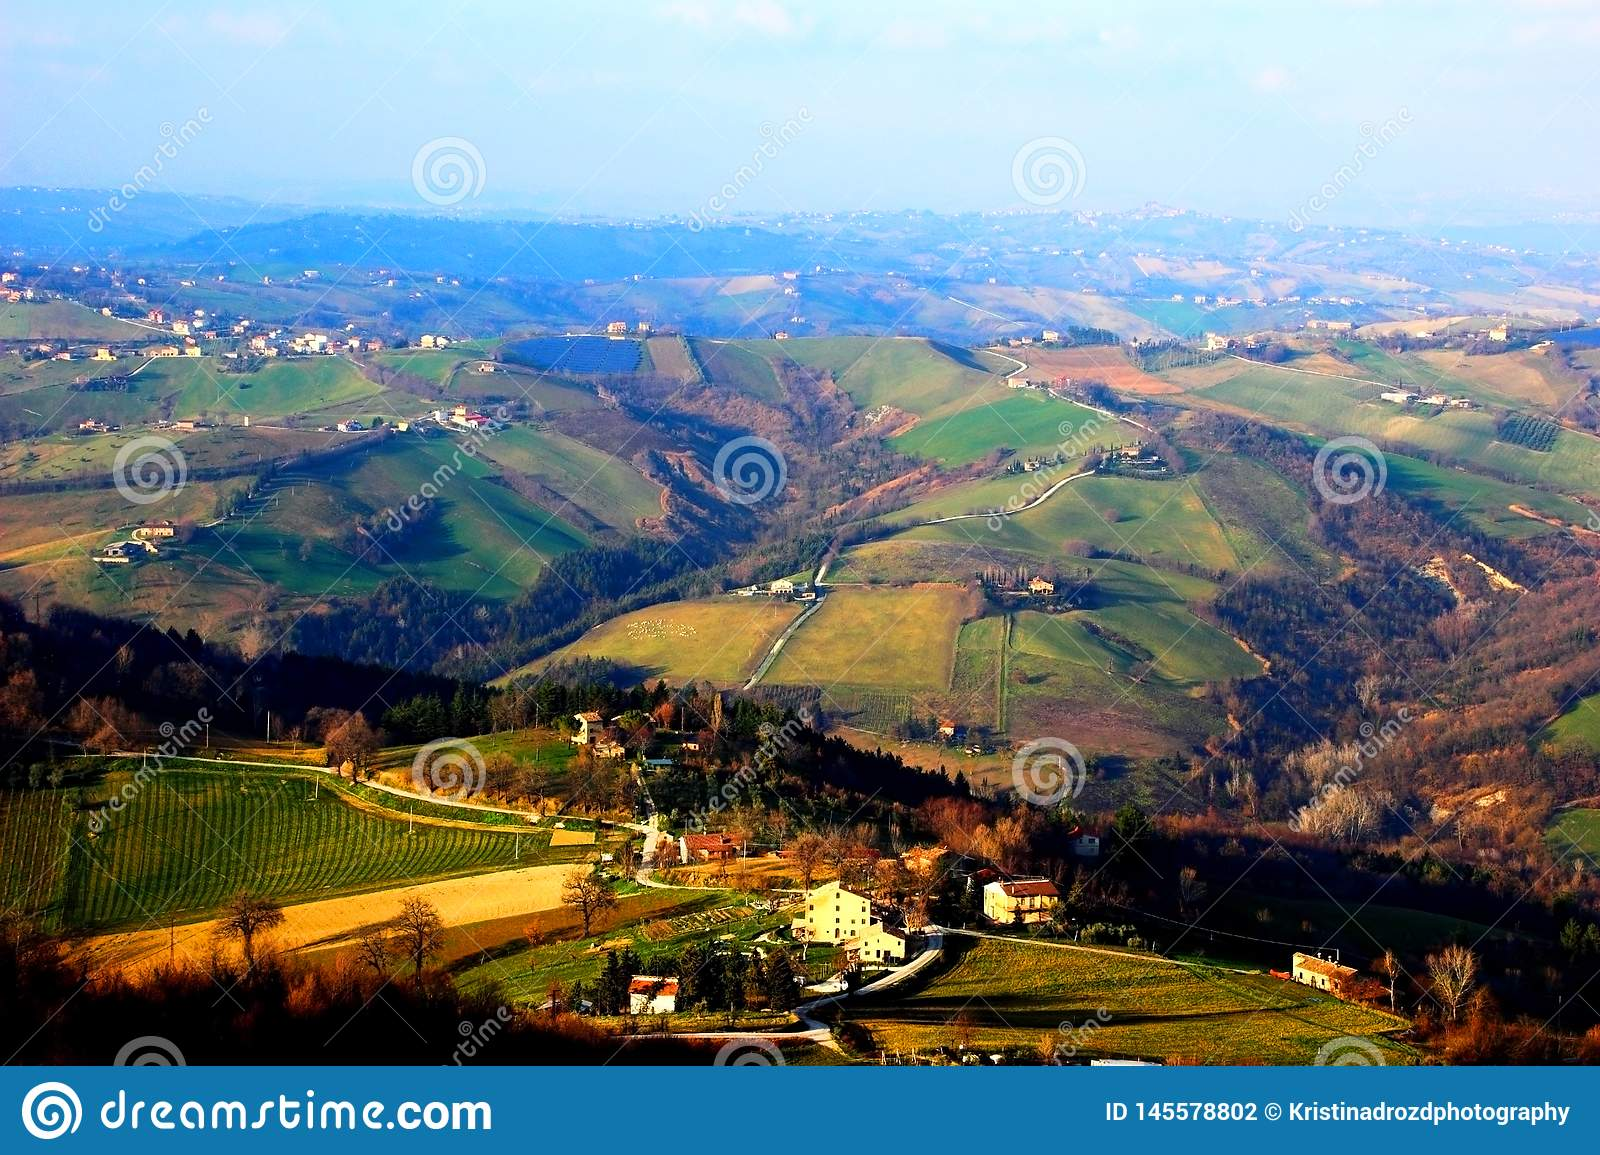 View from above at Marche hills covered by fields and forests